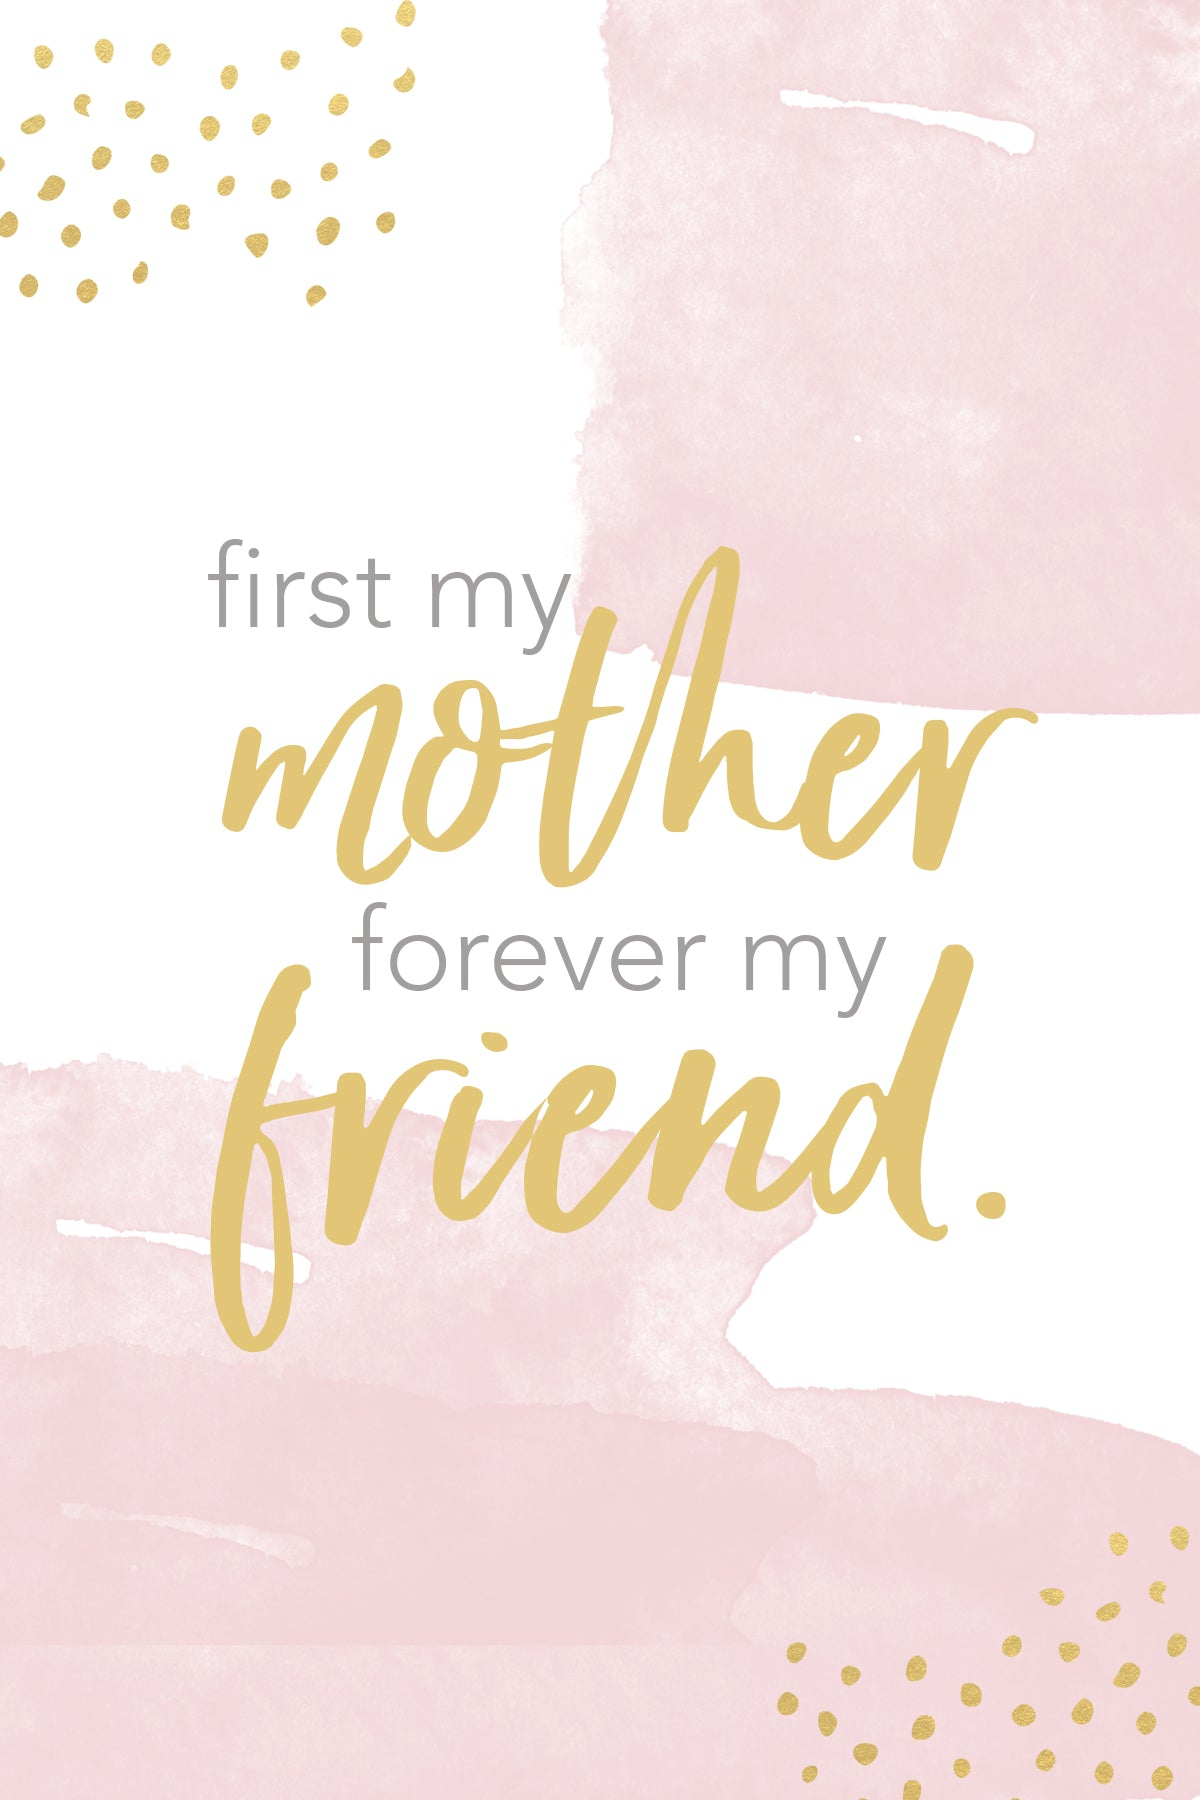 Mother friend -Inheritco